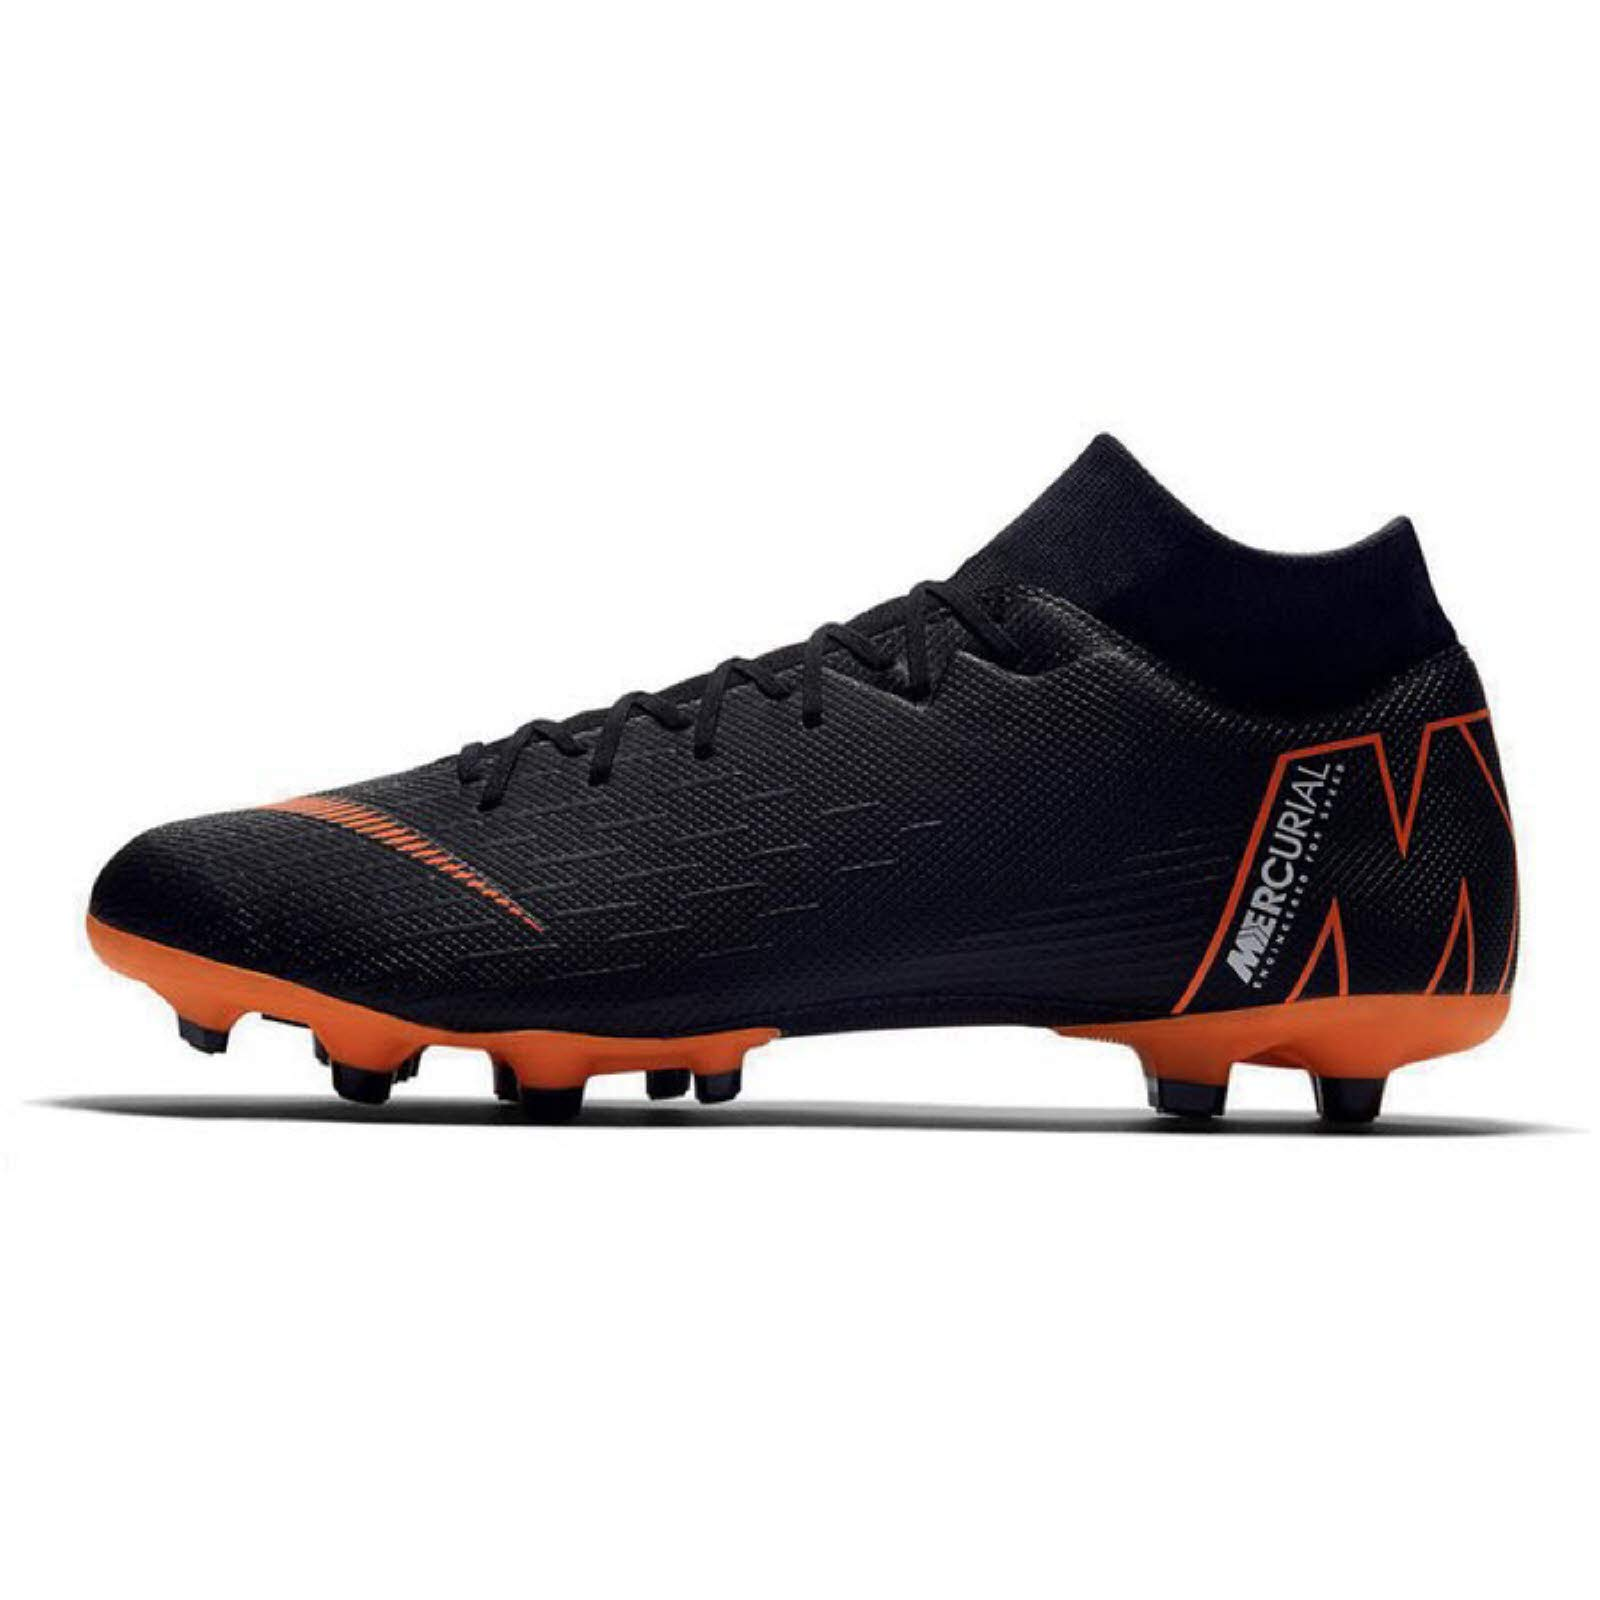 purchase cheap d122f b8cd7 Nike Mercurial Superfly VI Academy Multi-Ground Soccer Cleat (6.5)